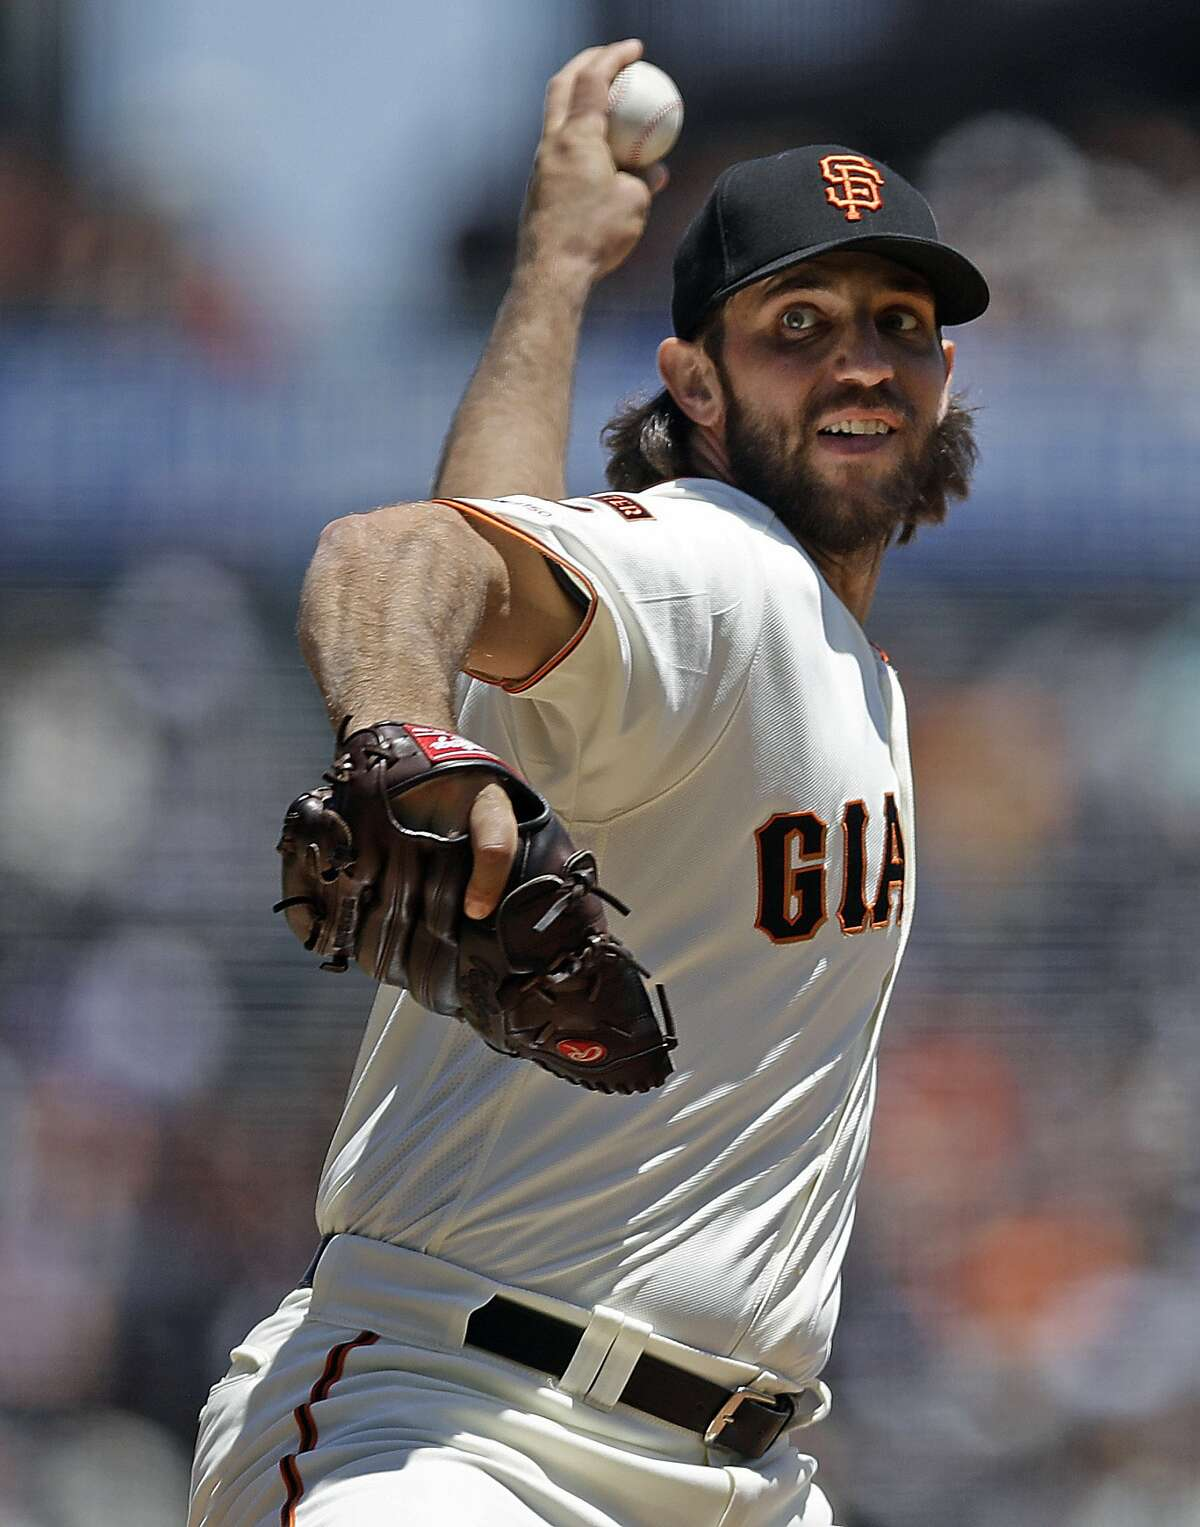 Madison Bumgarner put up solid numbers in a down year for the Giants, which should help him land a sizable contract in free agency.